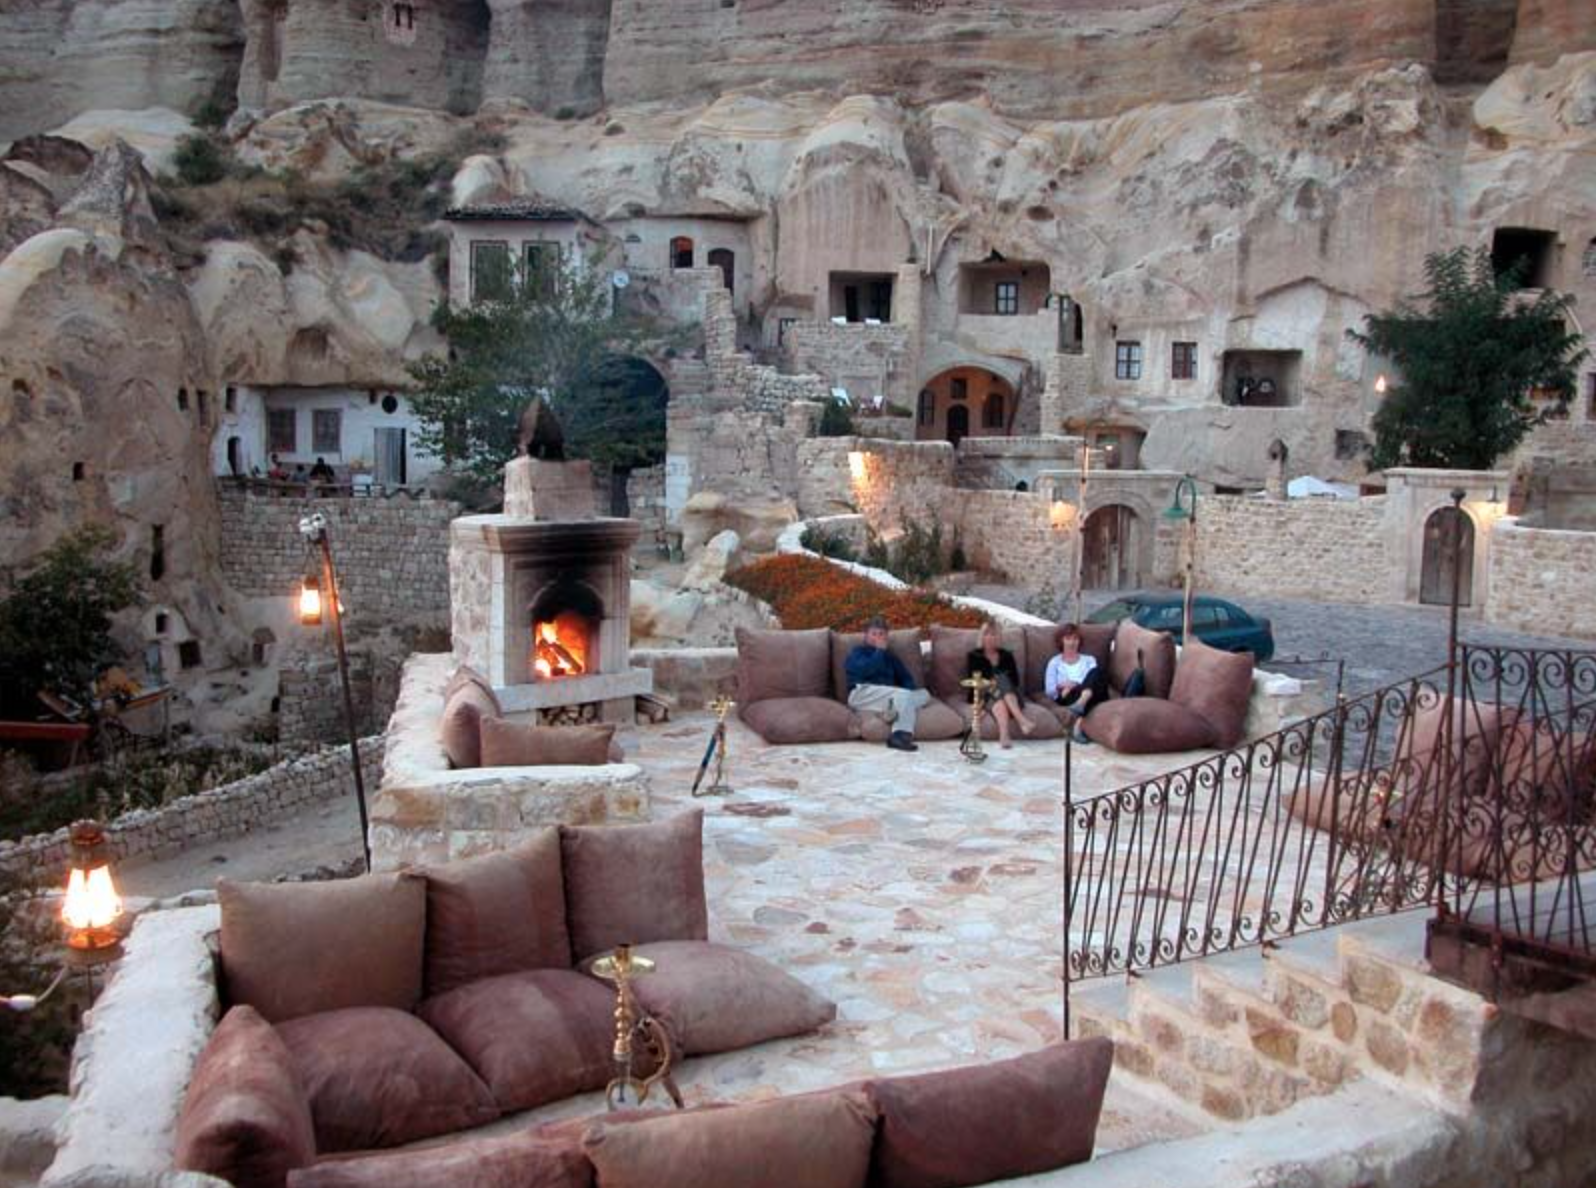 Hotel rooms and public spaces are beautified with natural nooks, archways and stone fireplaces.